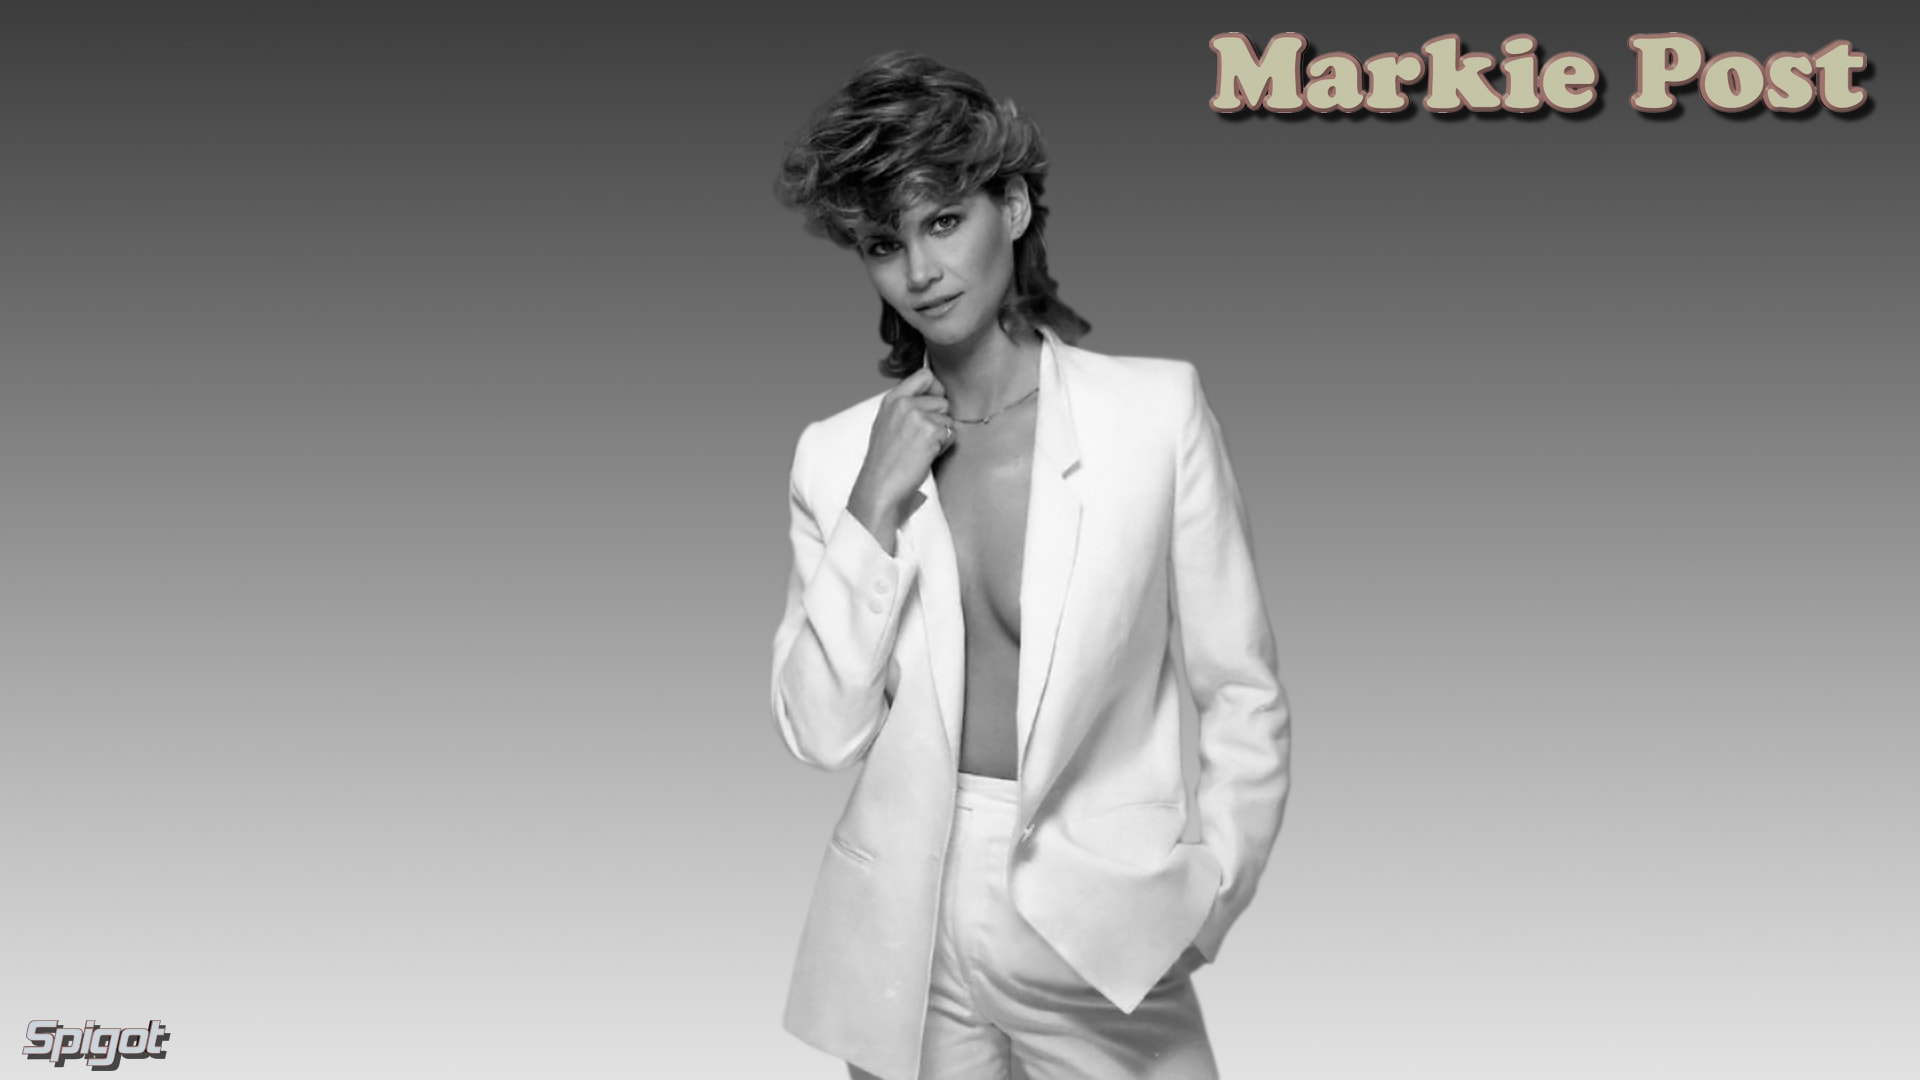 Markie Post Widescreen for desktop